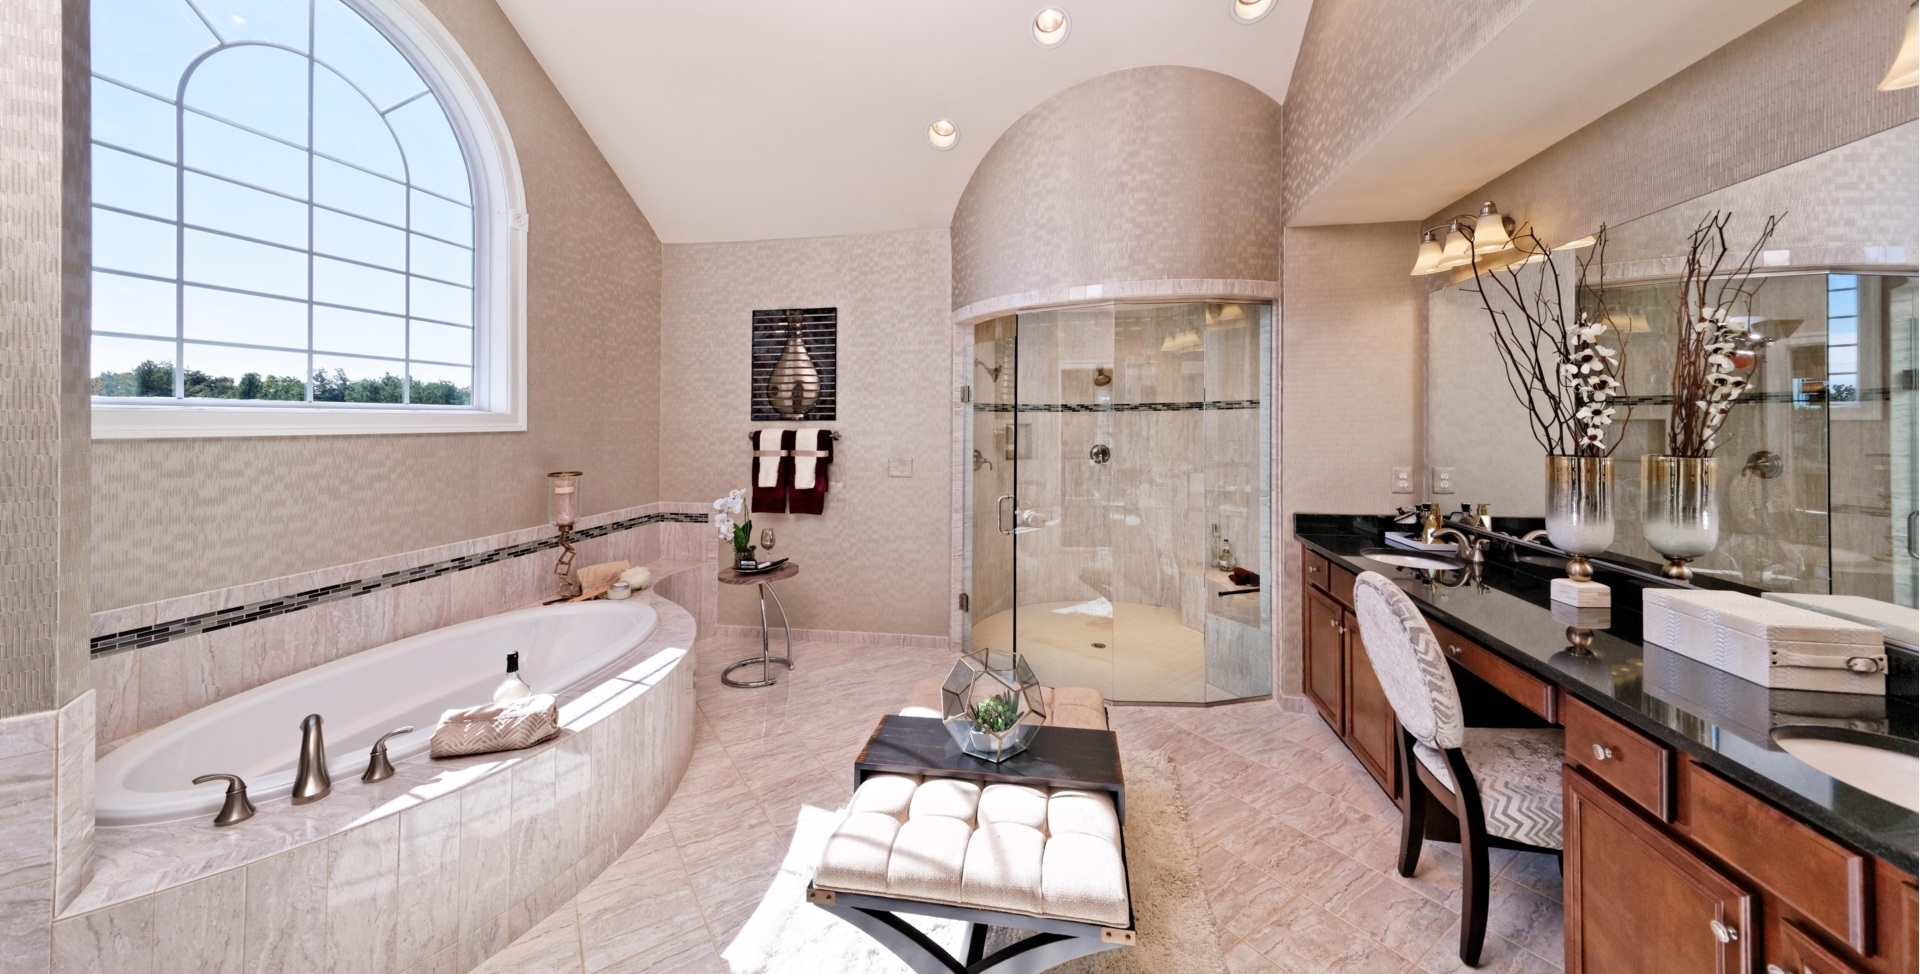 Venezia Model Owner's Suite Spa Bath